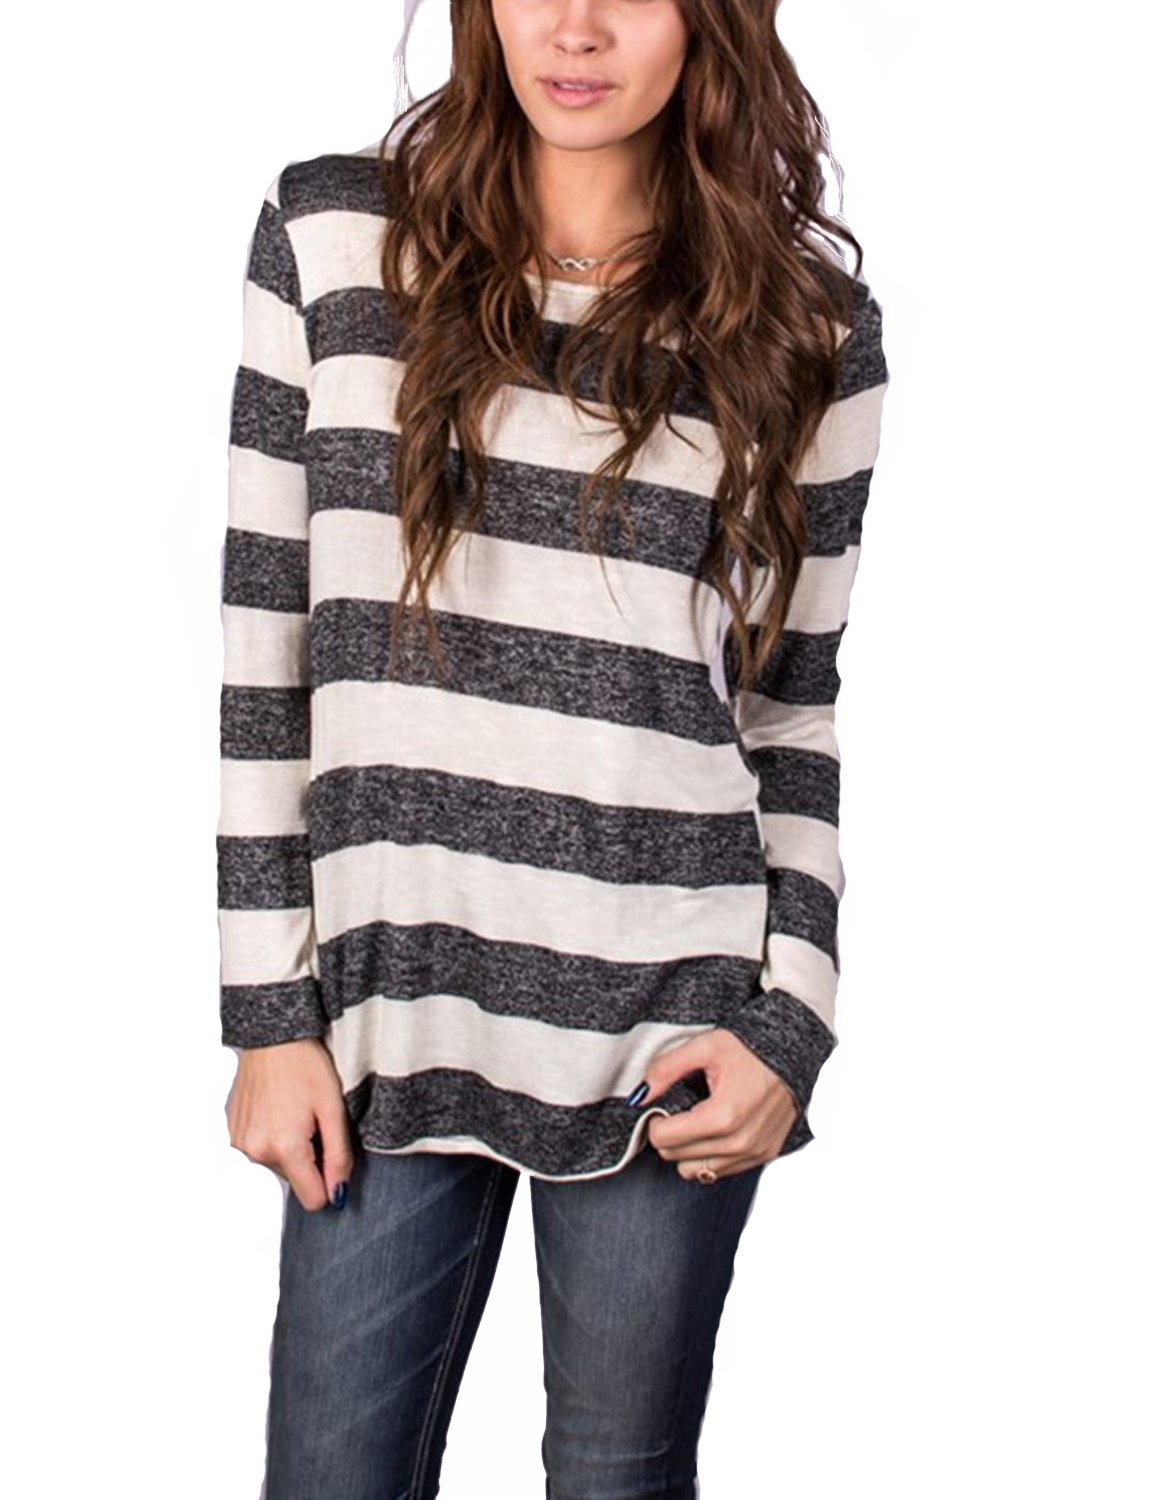 Hount Women's Casual Round Neck Loose Fit Long Sleeve Stripe T-Shirt Blouse Tops with Button (Charcoal Grey, XL)